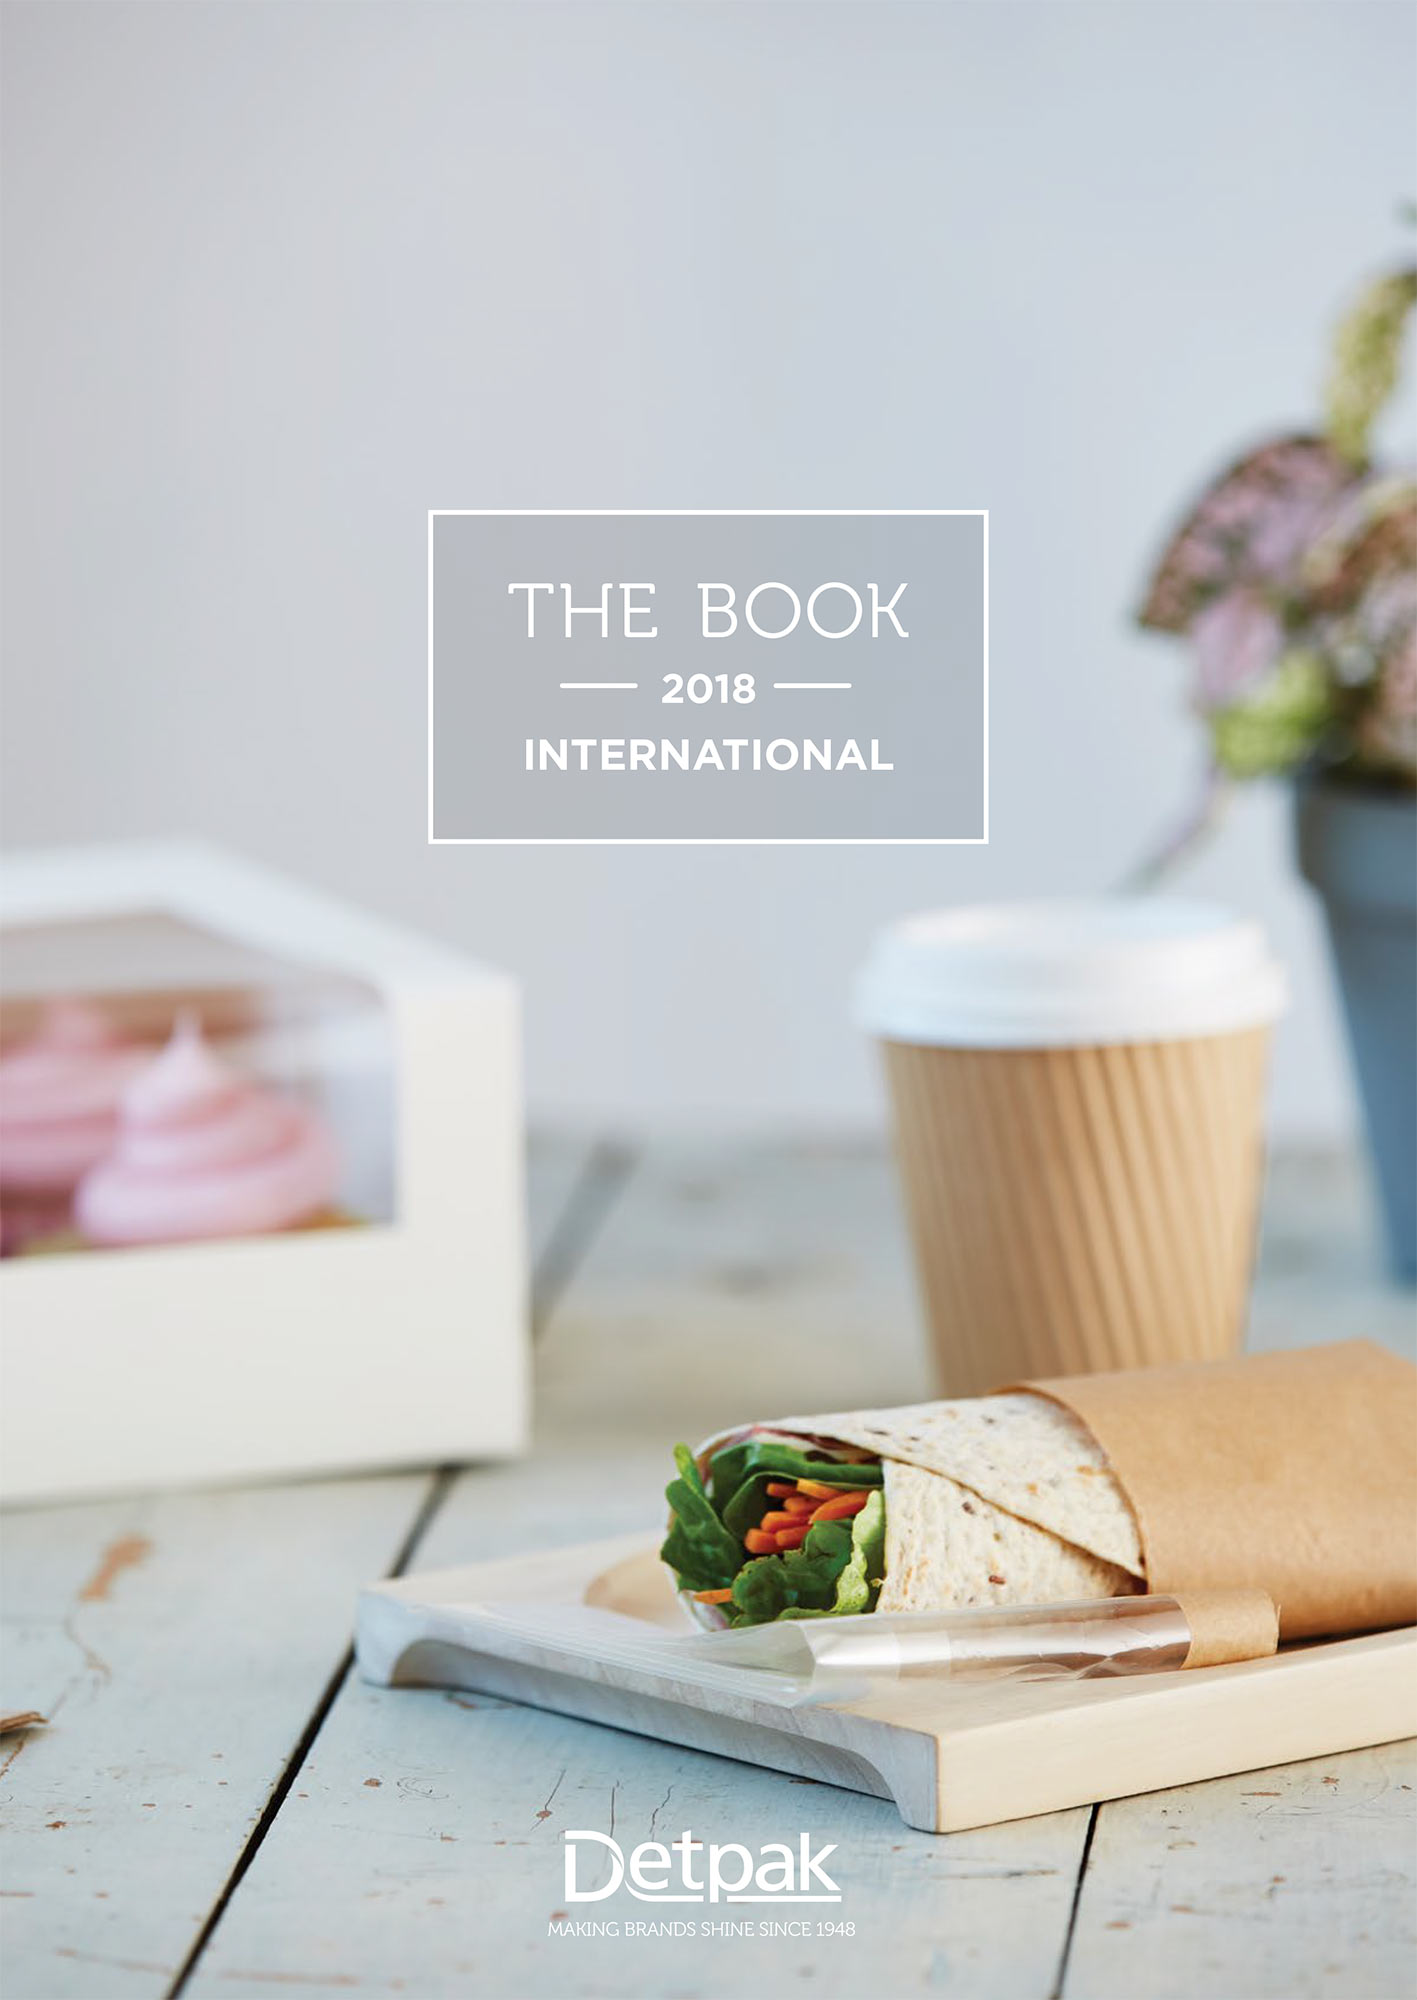 The Book - International 2018